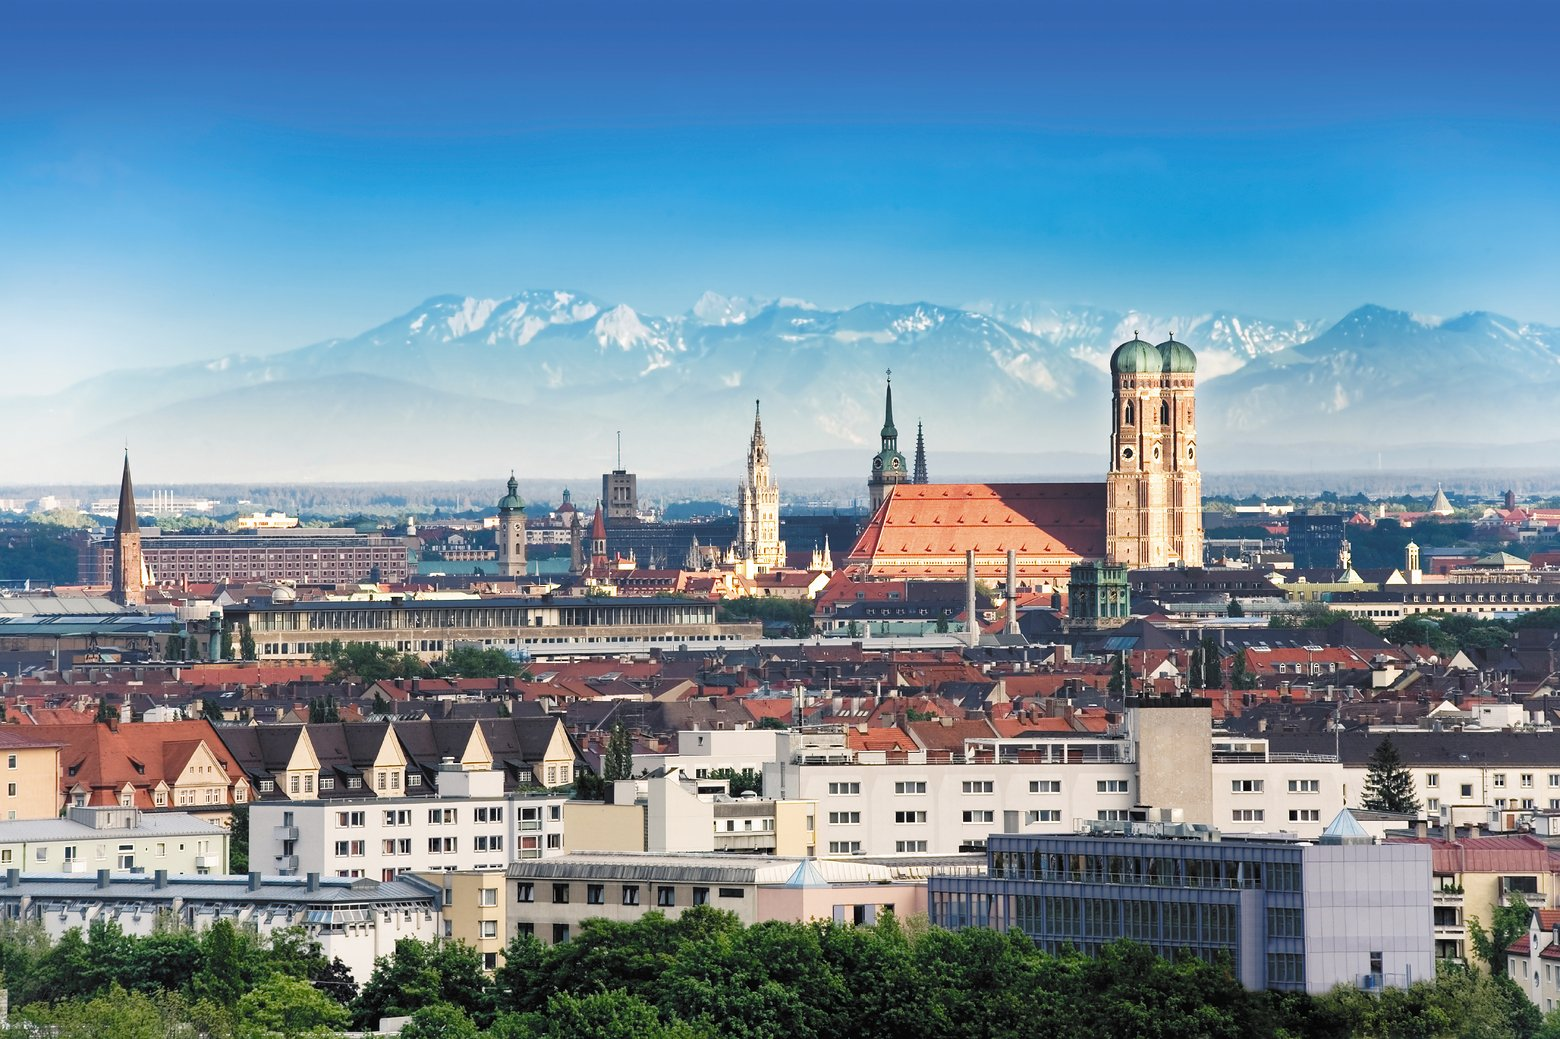 Vogue |May 25, 2016   Considering a Trip to Berlin? Why You Should Detour to Munich Instead